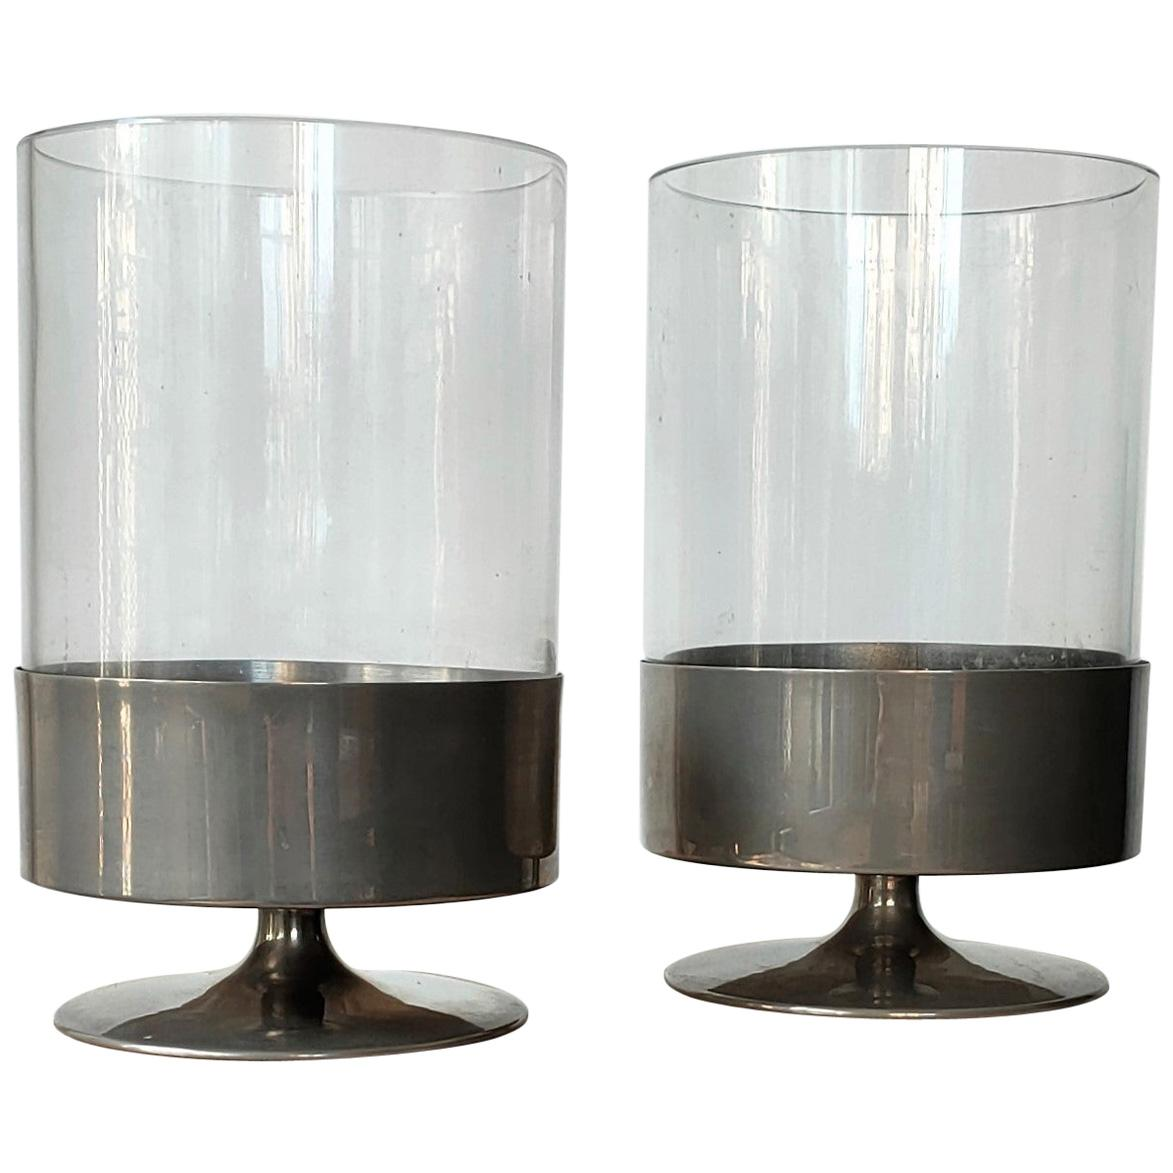 Signed Pair of Minimalist Candleholders by Philippe Barbier, France, 1970s